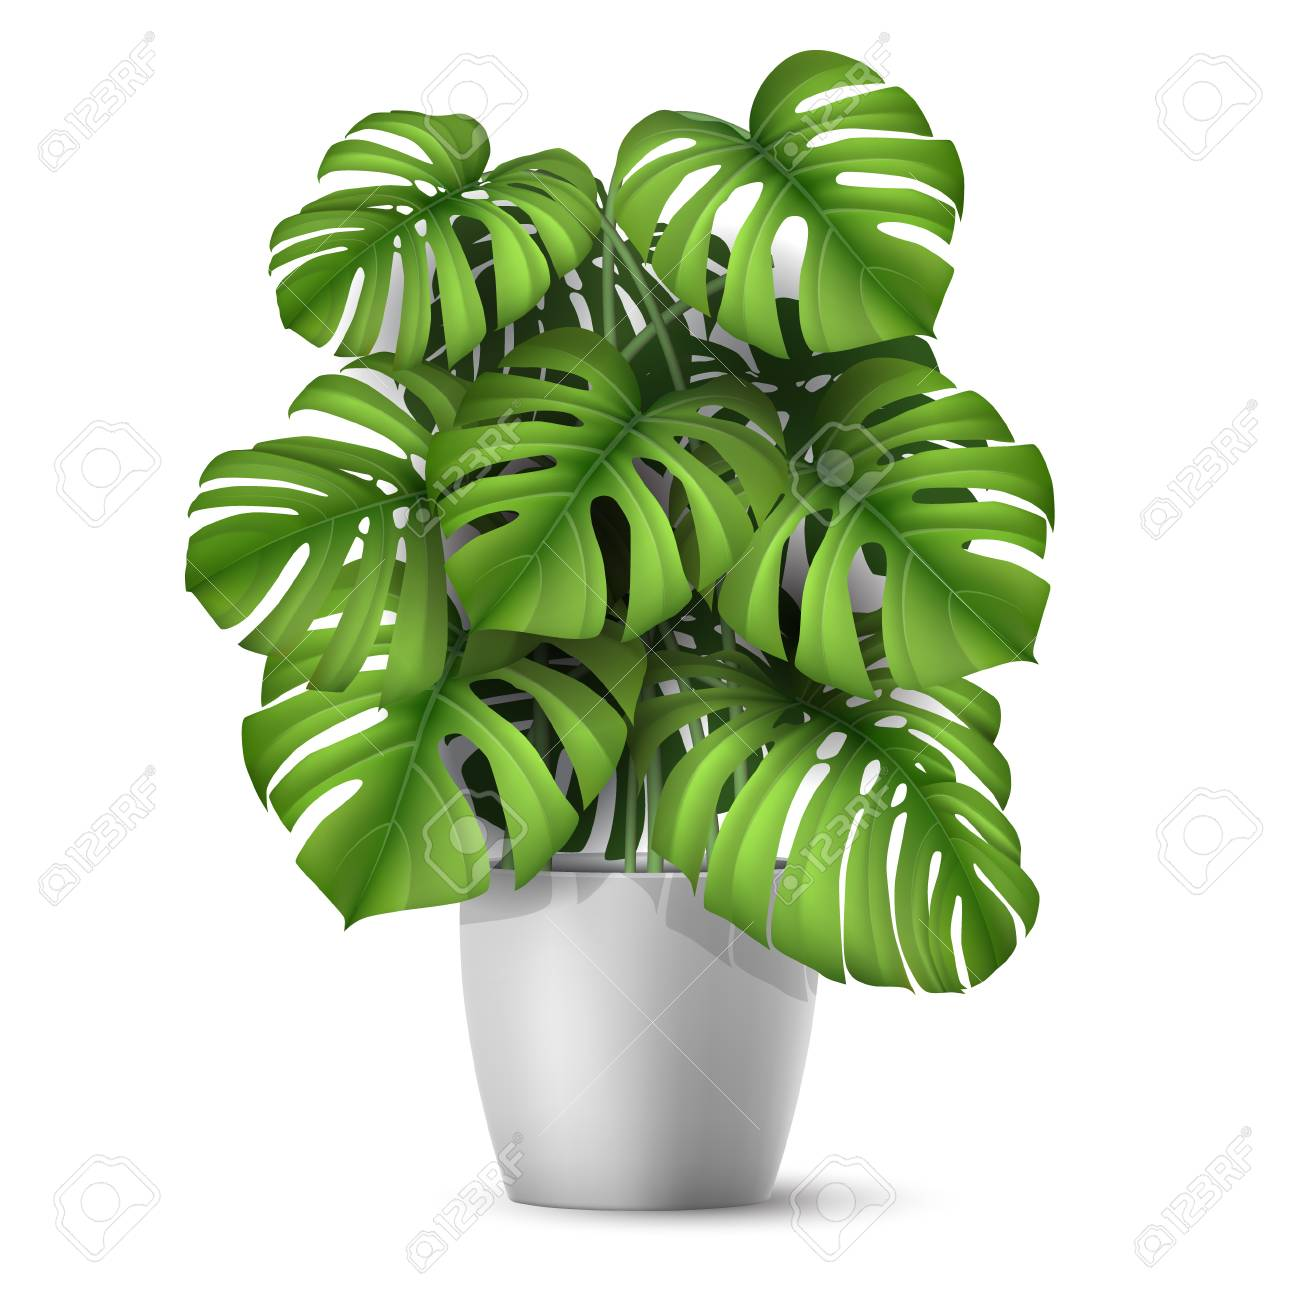 Monstera in a pot. Tropical plant for interior decor of home or office. Vector illustration in vector realistic 3d style. - 99968321